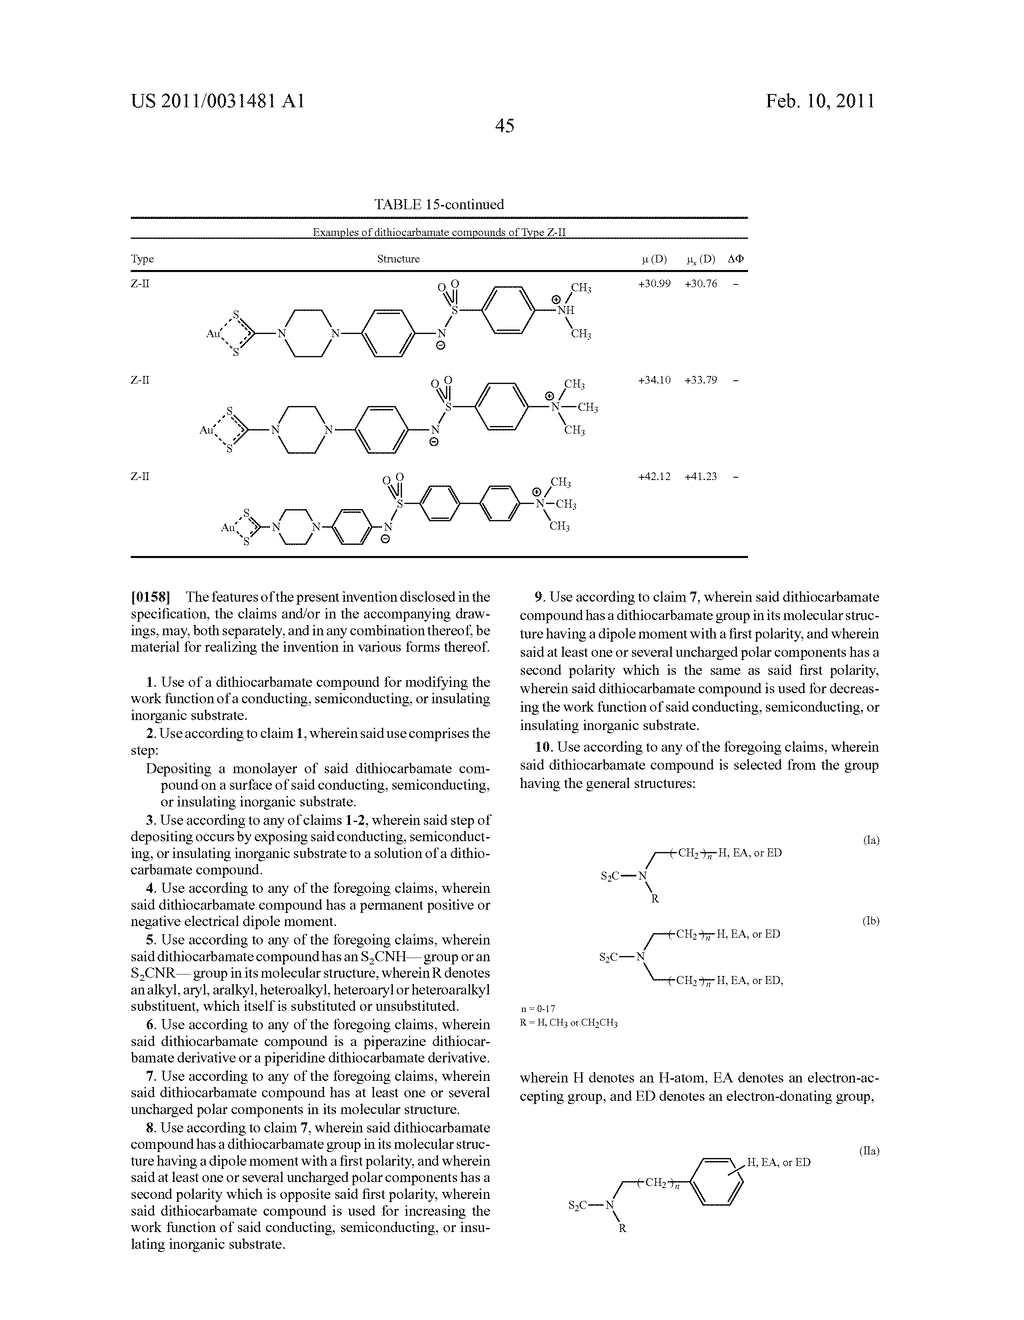 USES OF DITHIOCARBAMATE COMPOUNDS - diagram, schematic, and image 71